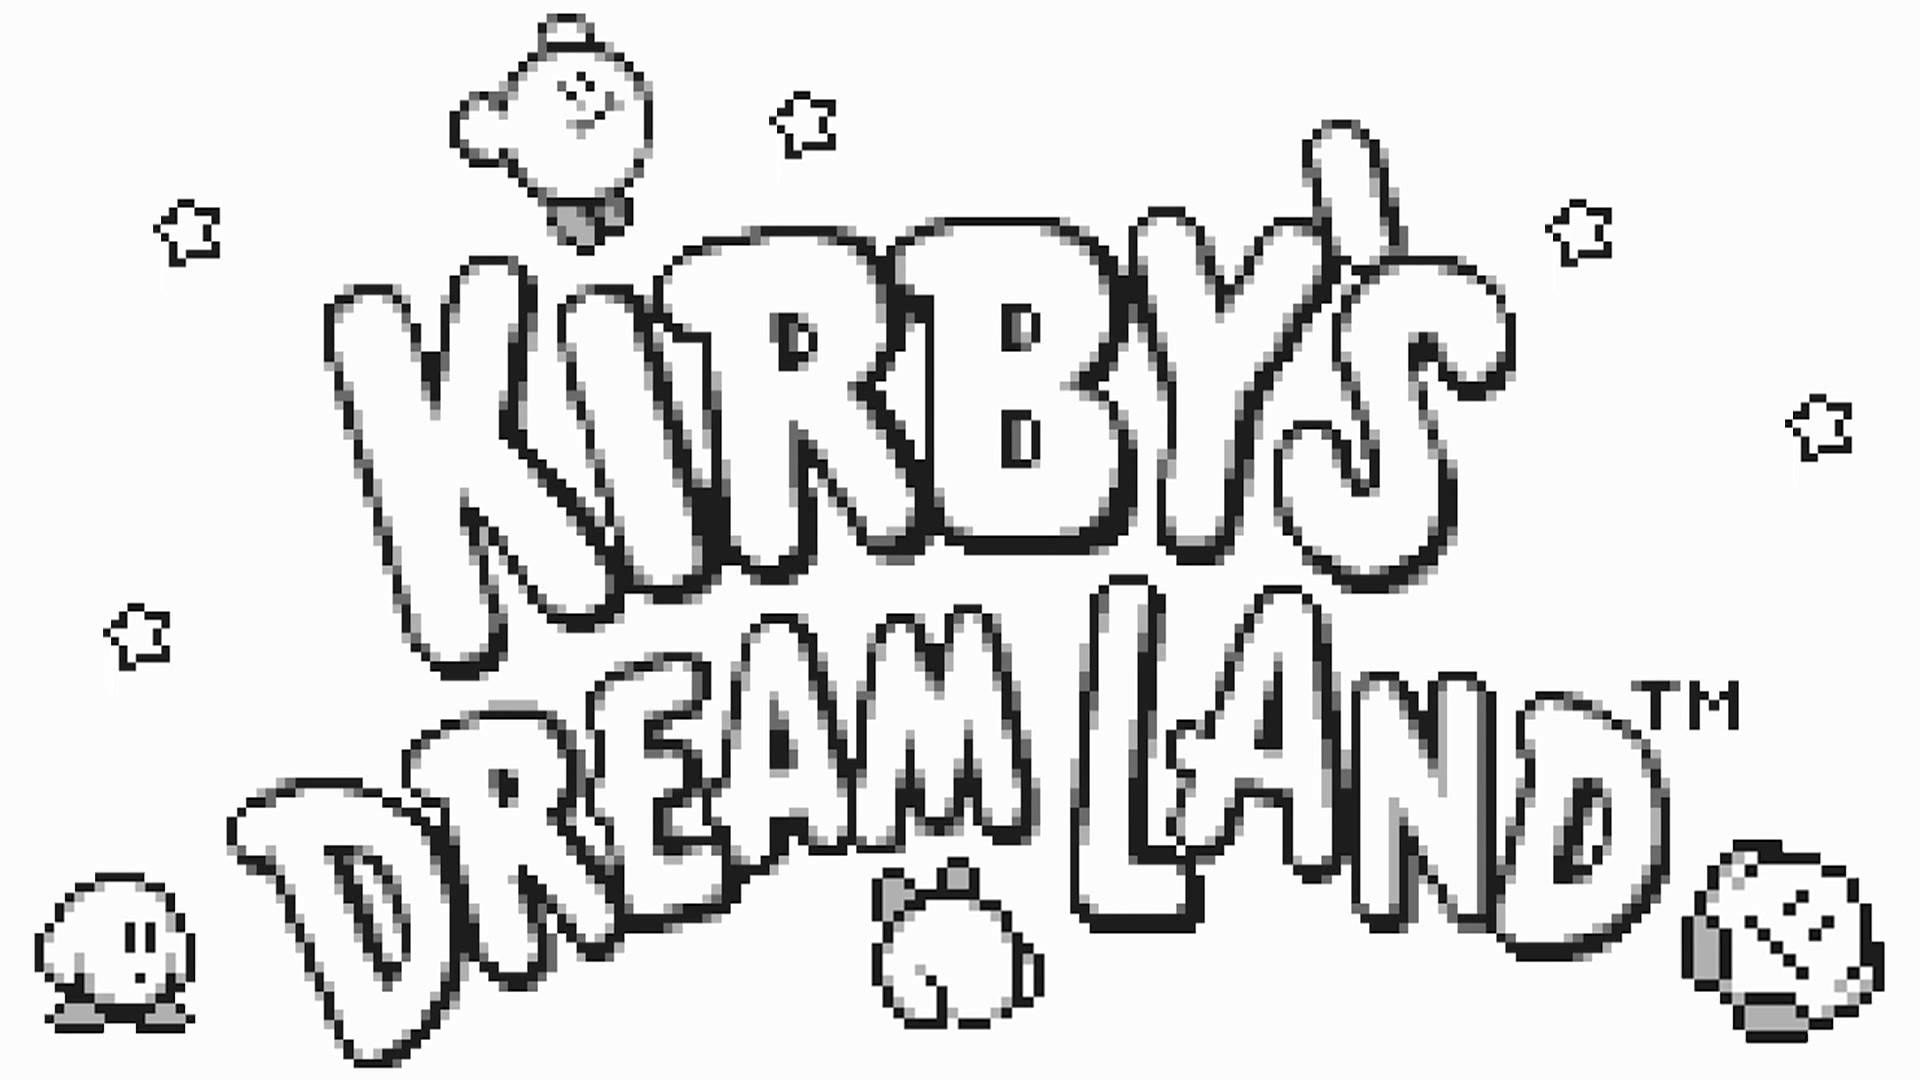 Let's play some Kirby, and let's remember Iwata.